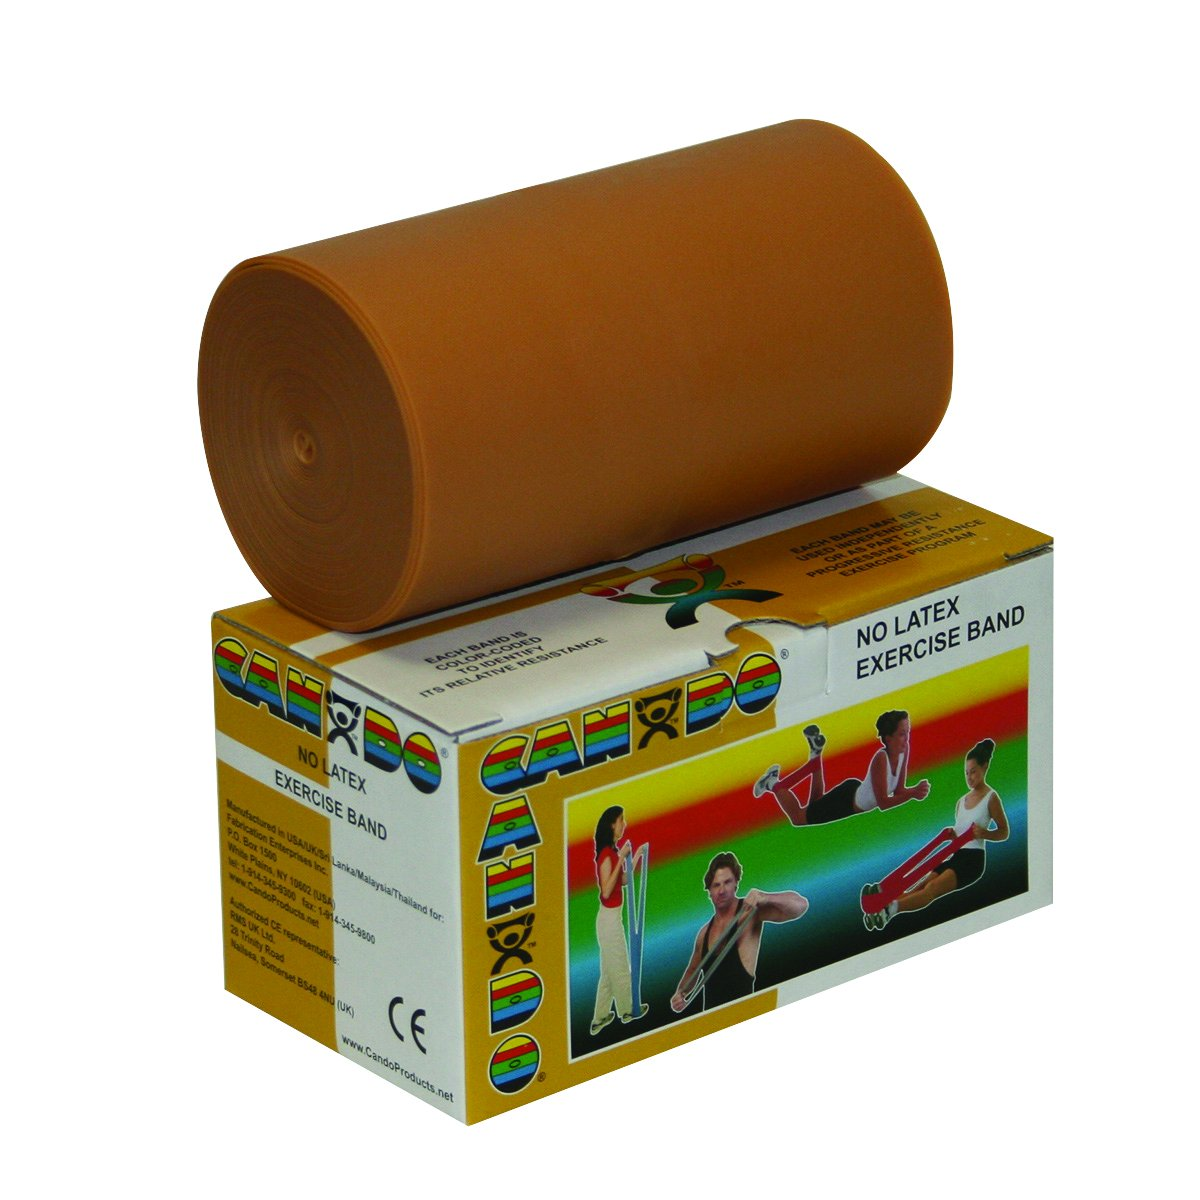 Cando 10-5617 Gold Latex-Free Exercise Band, XXX-Heavy Resistance, 6 yd Length